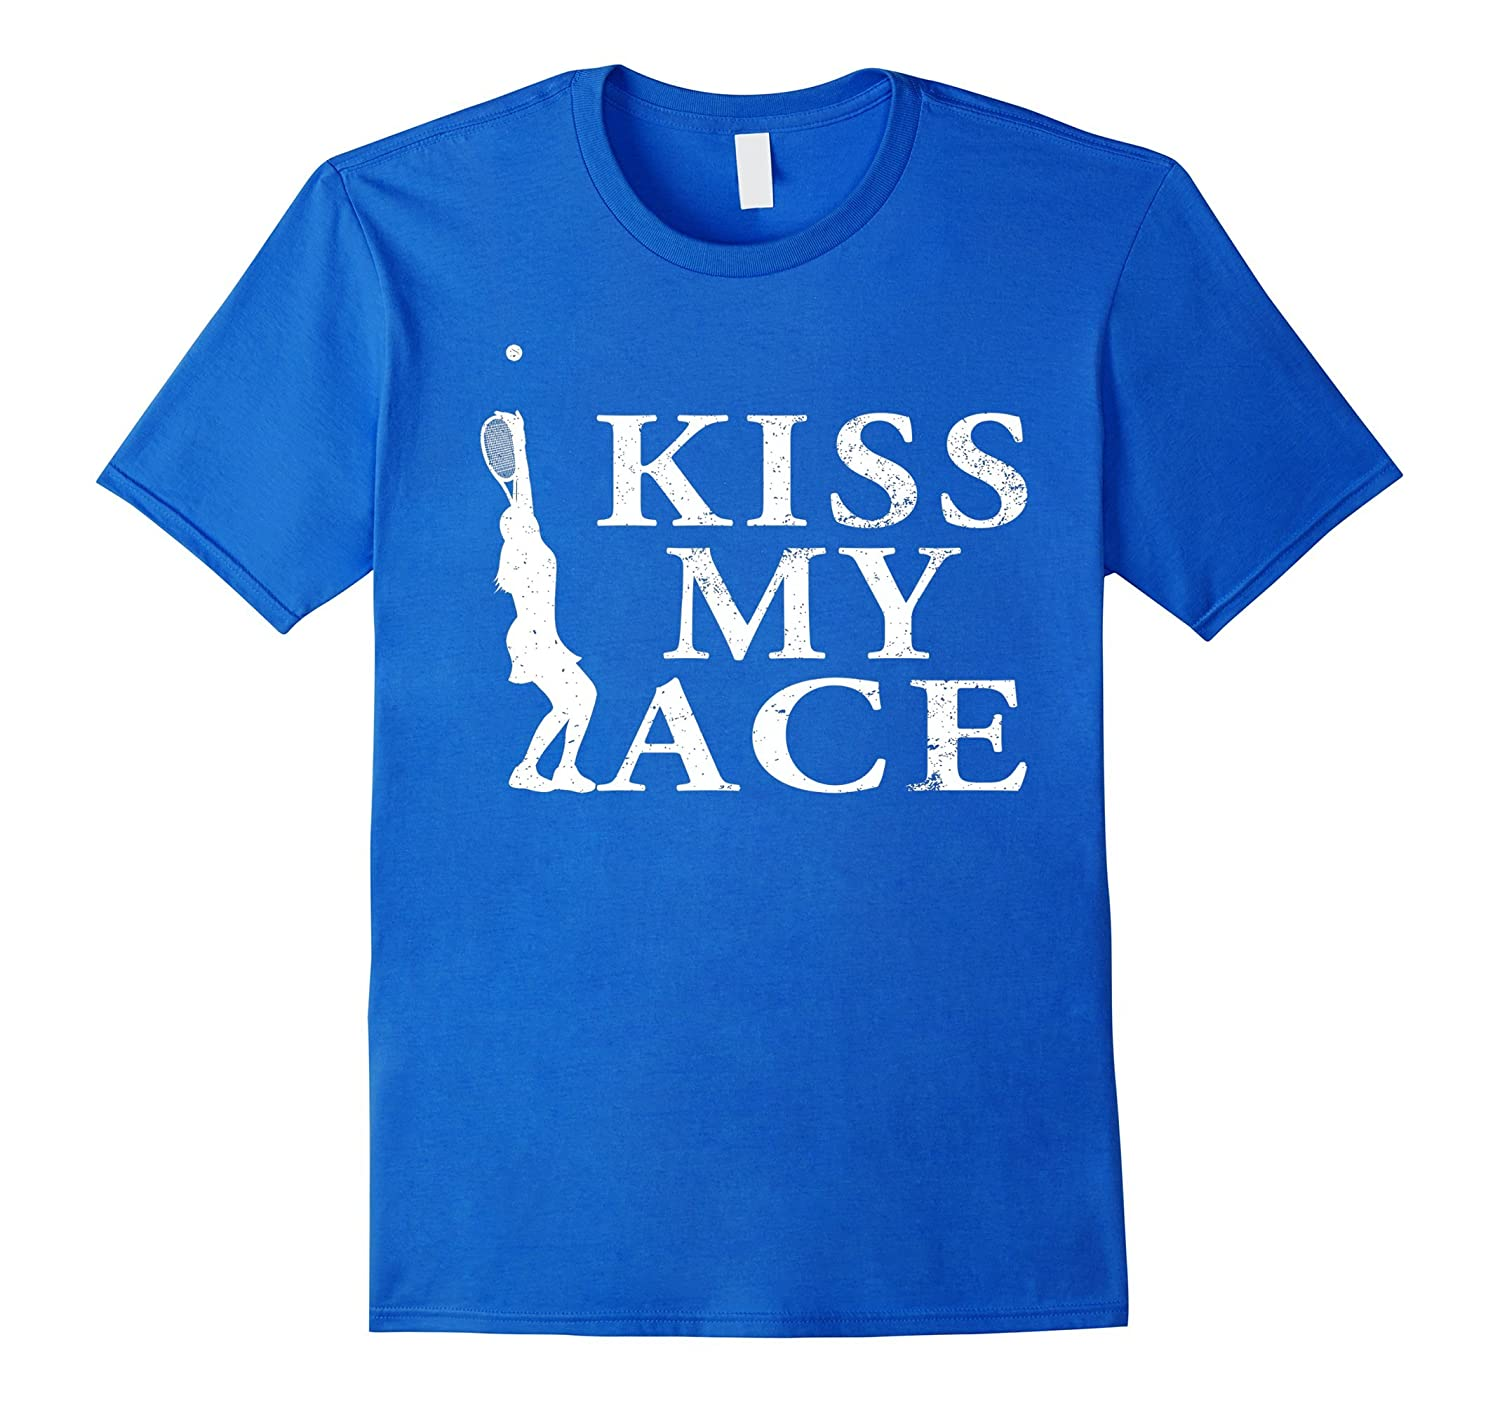 tennis t shirt women kiss my ace funny tennis t shirt goatstee. Black Bedroom Furniture Sets. Home Design Ideas